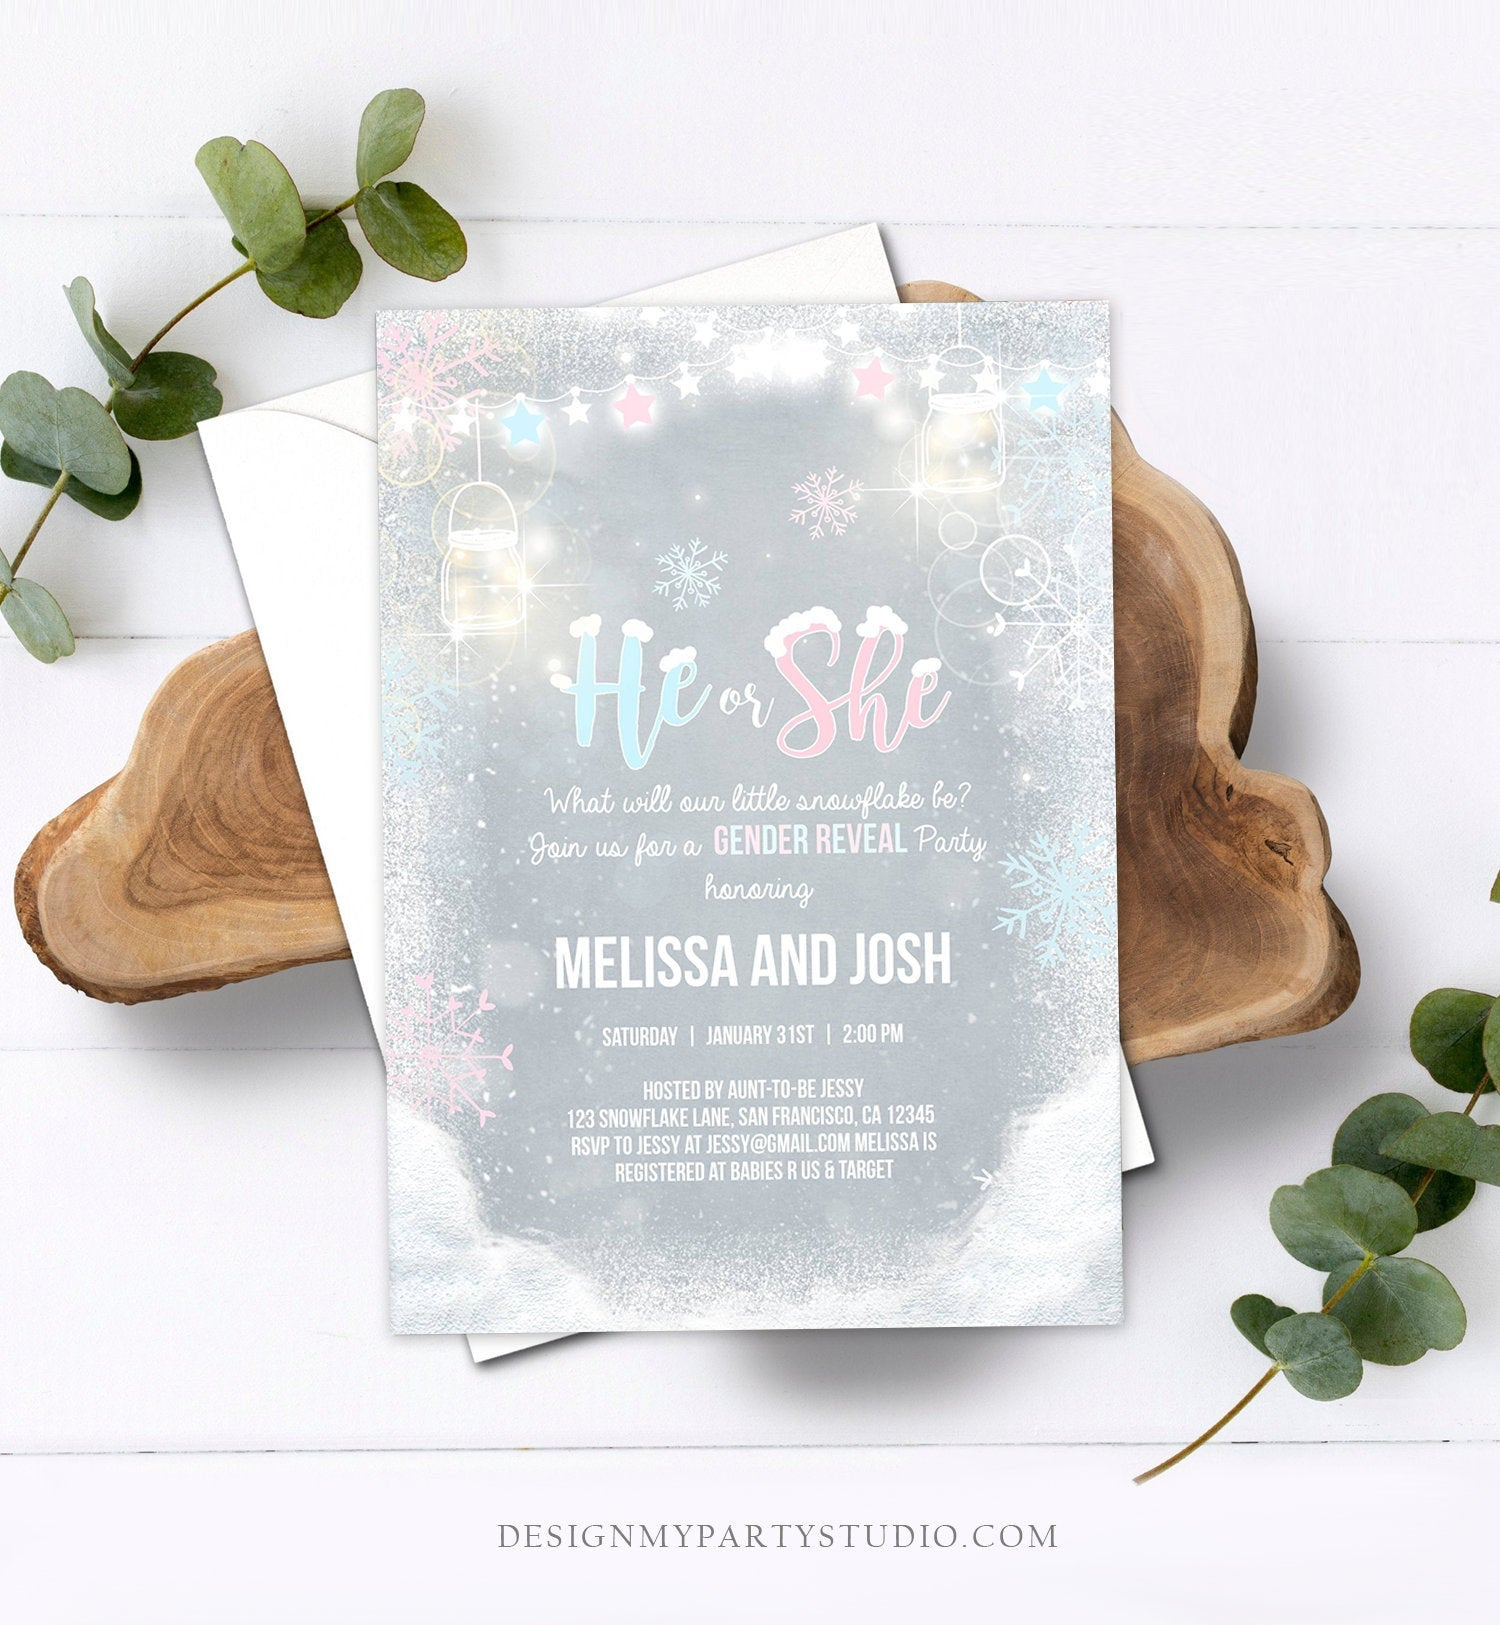 Editable Winter Gender Reveal Party Invite Cold Outside Snow Boy or Girl He or She Rustic Invitation Template Instant Download Corjl 0031